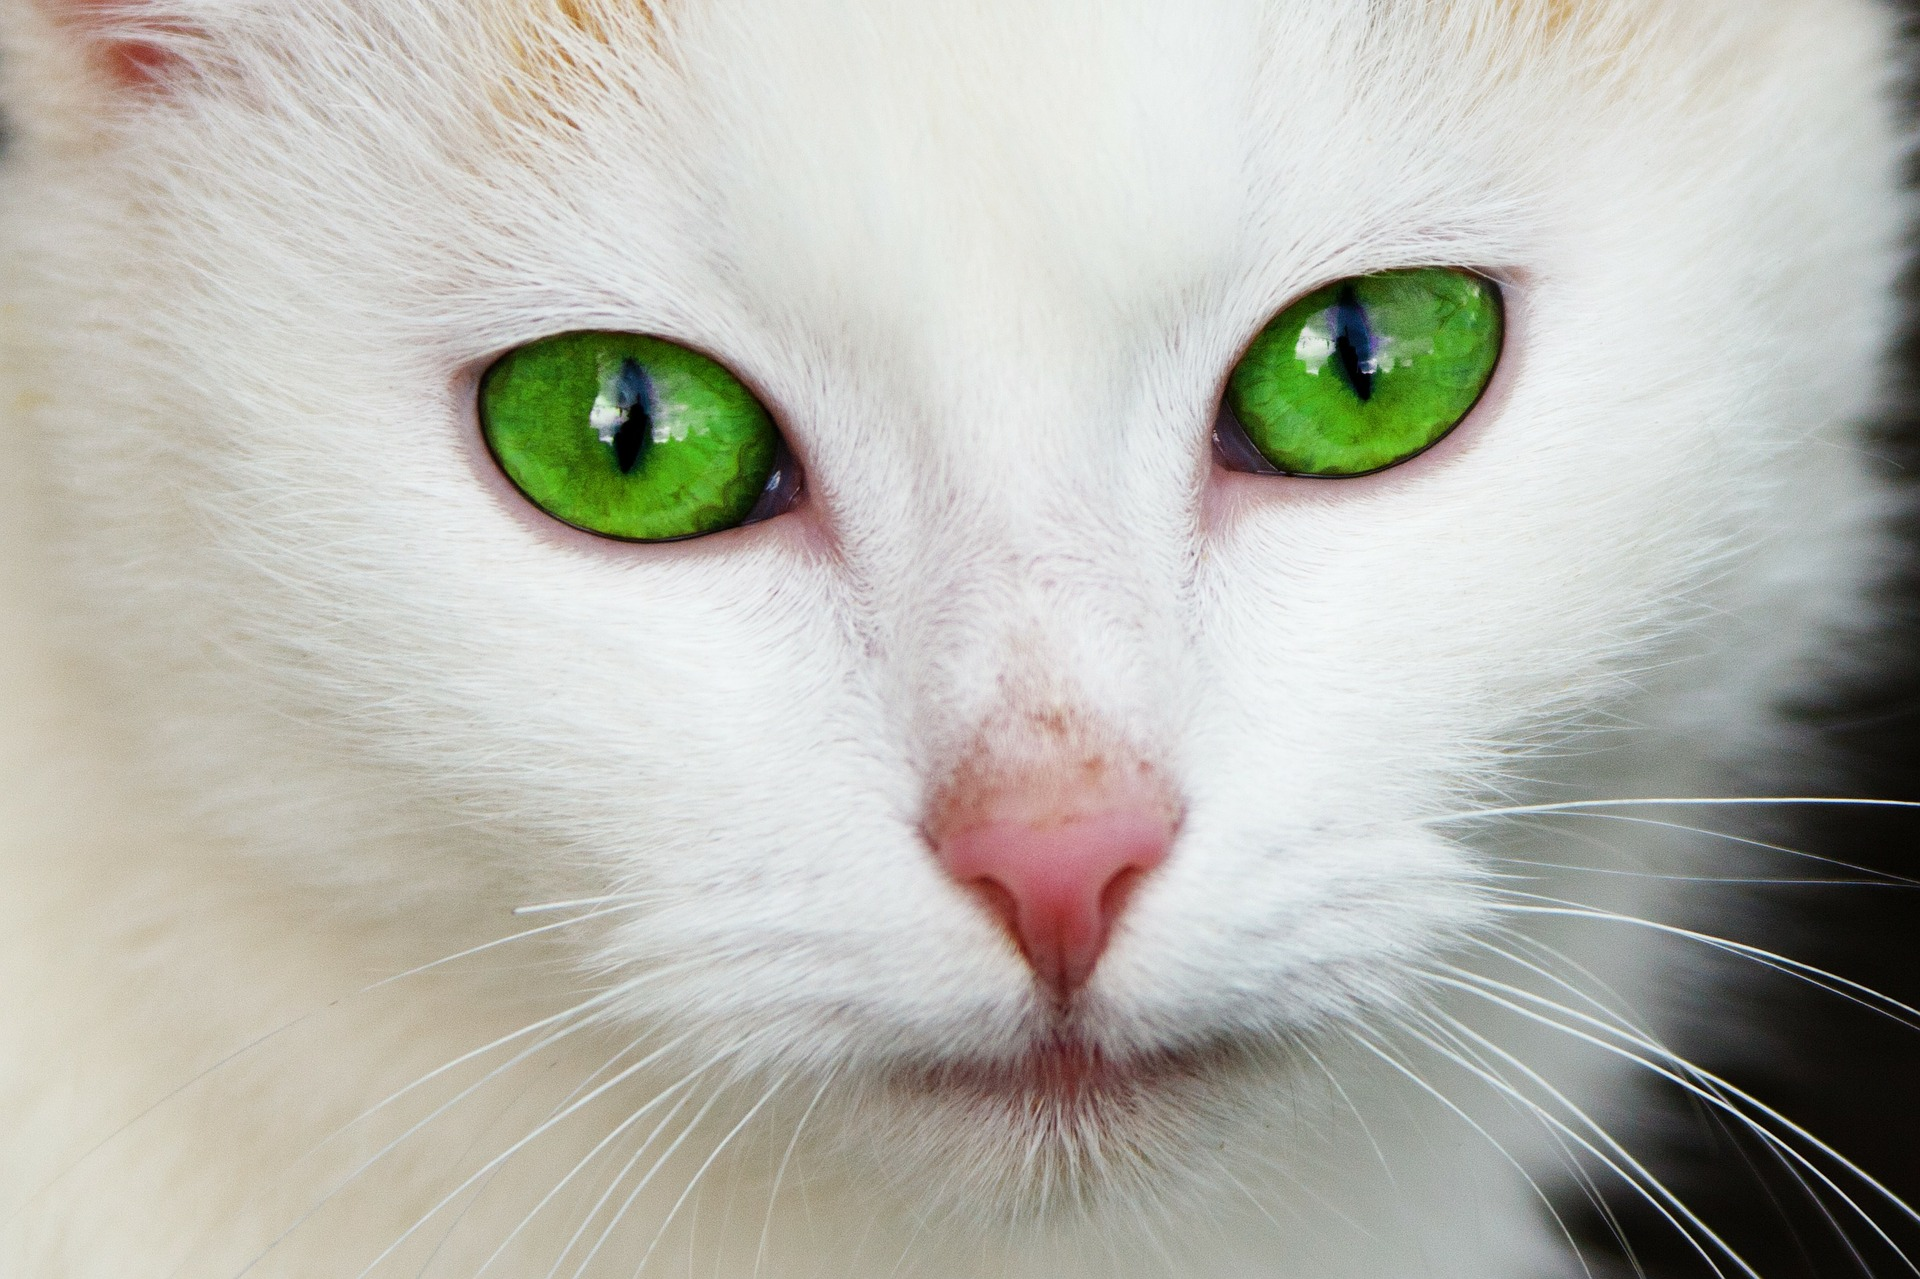 Cat Eyes Wallpapers HD Cat With Blue Eyes & Green Cat Eyes & Cats Eyes Wallpaper HD